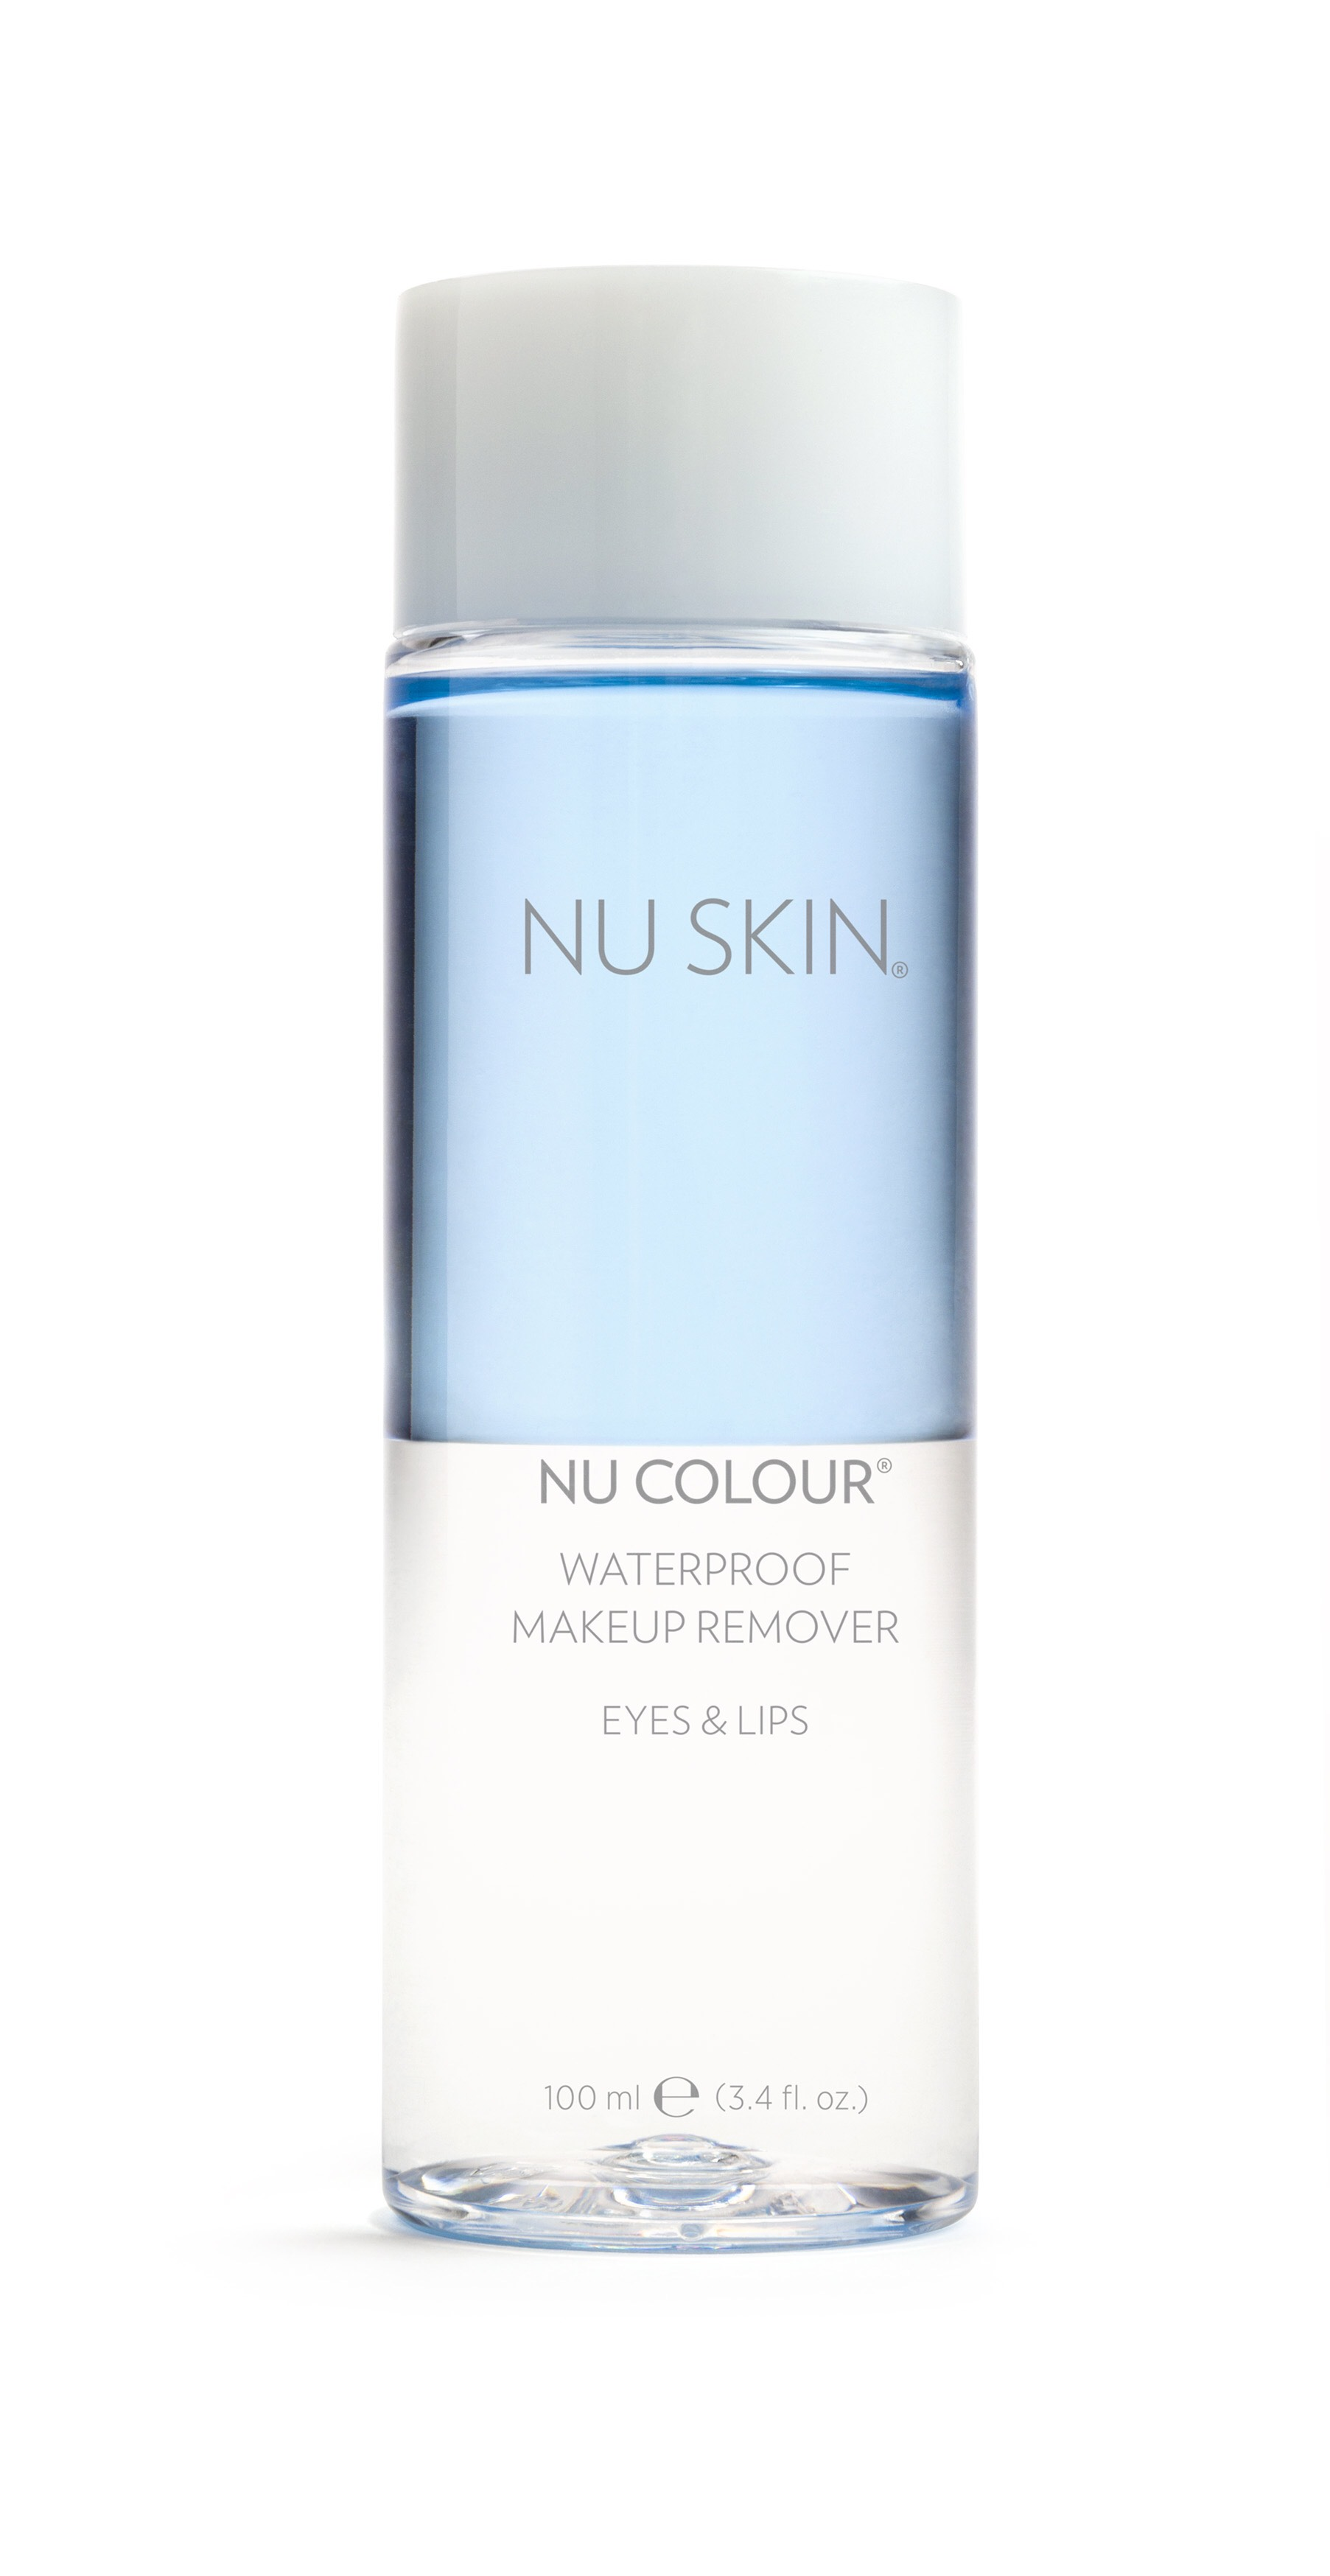 Nu skin Nu Colour Waterproof Makeup Remover 100ml